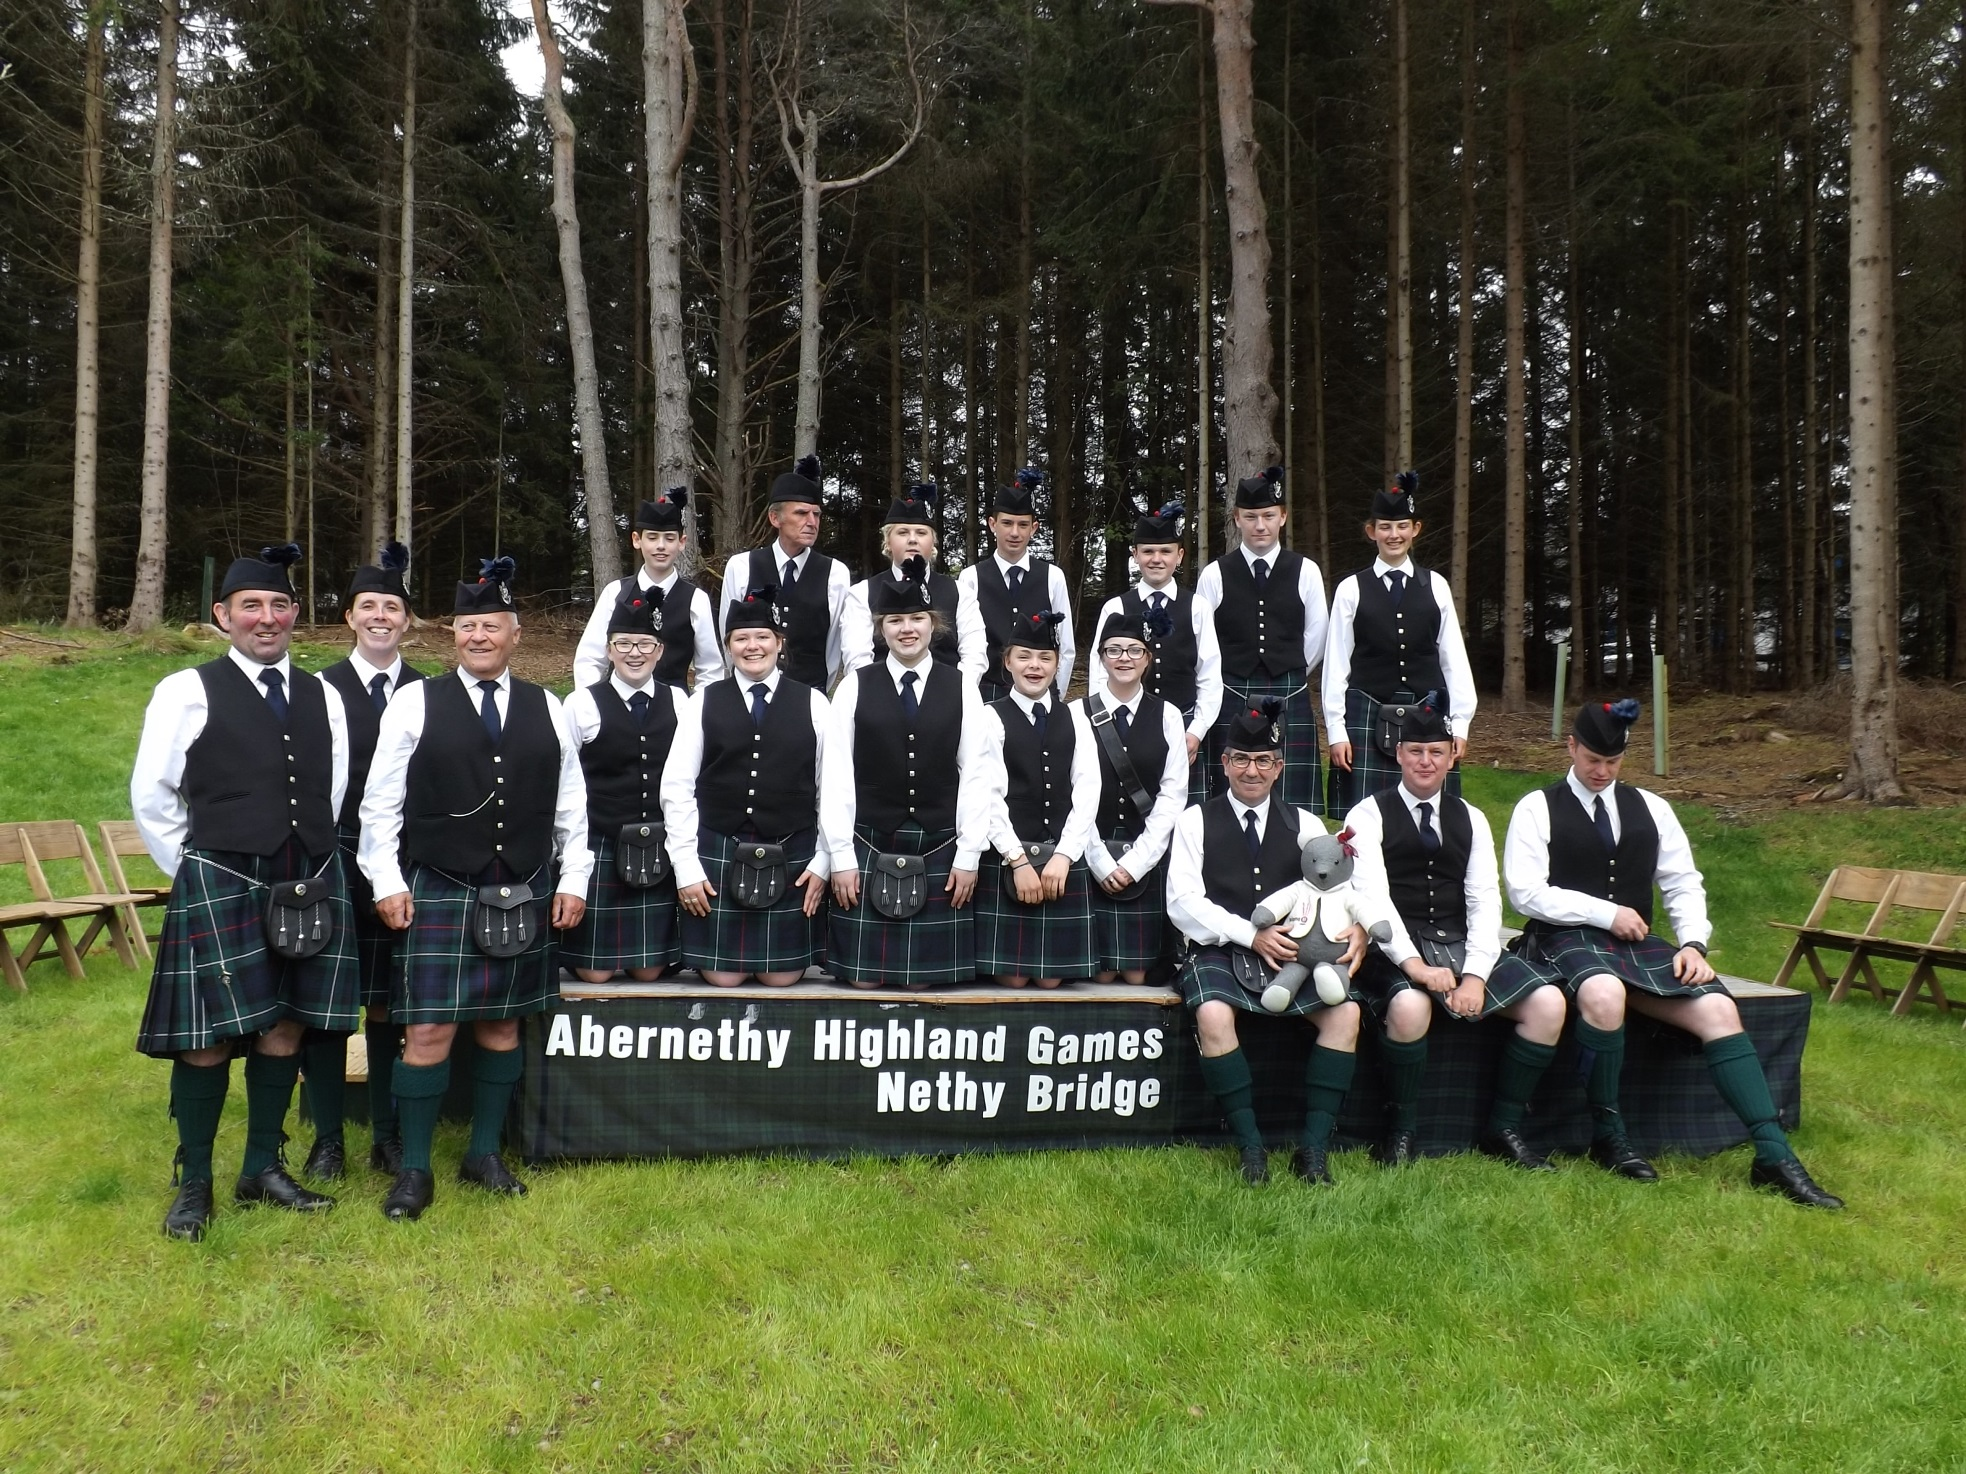 Nethybridge Highland Games